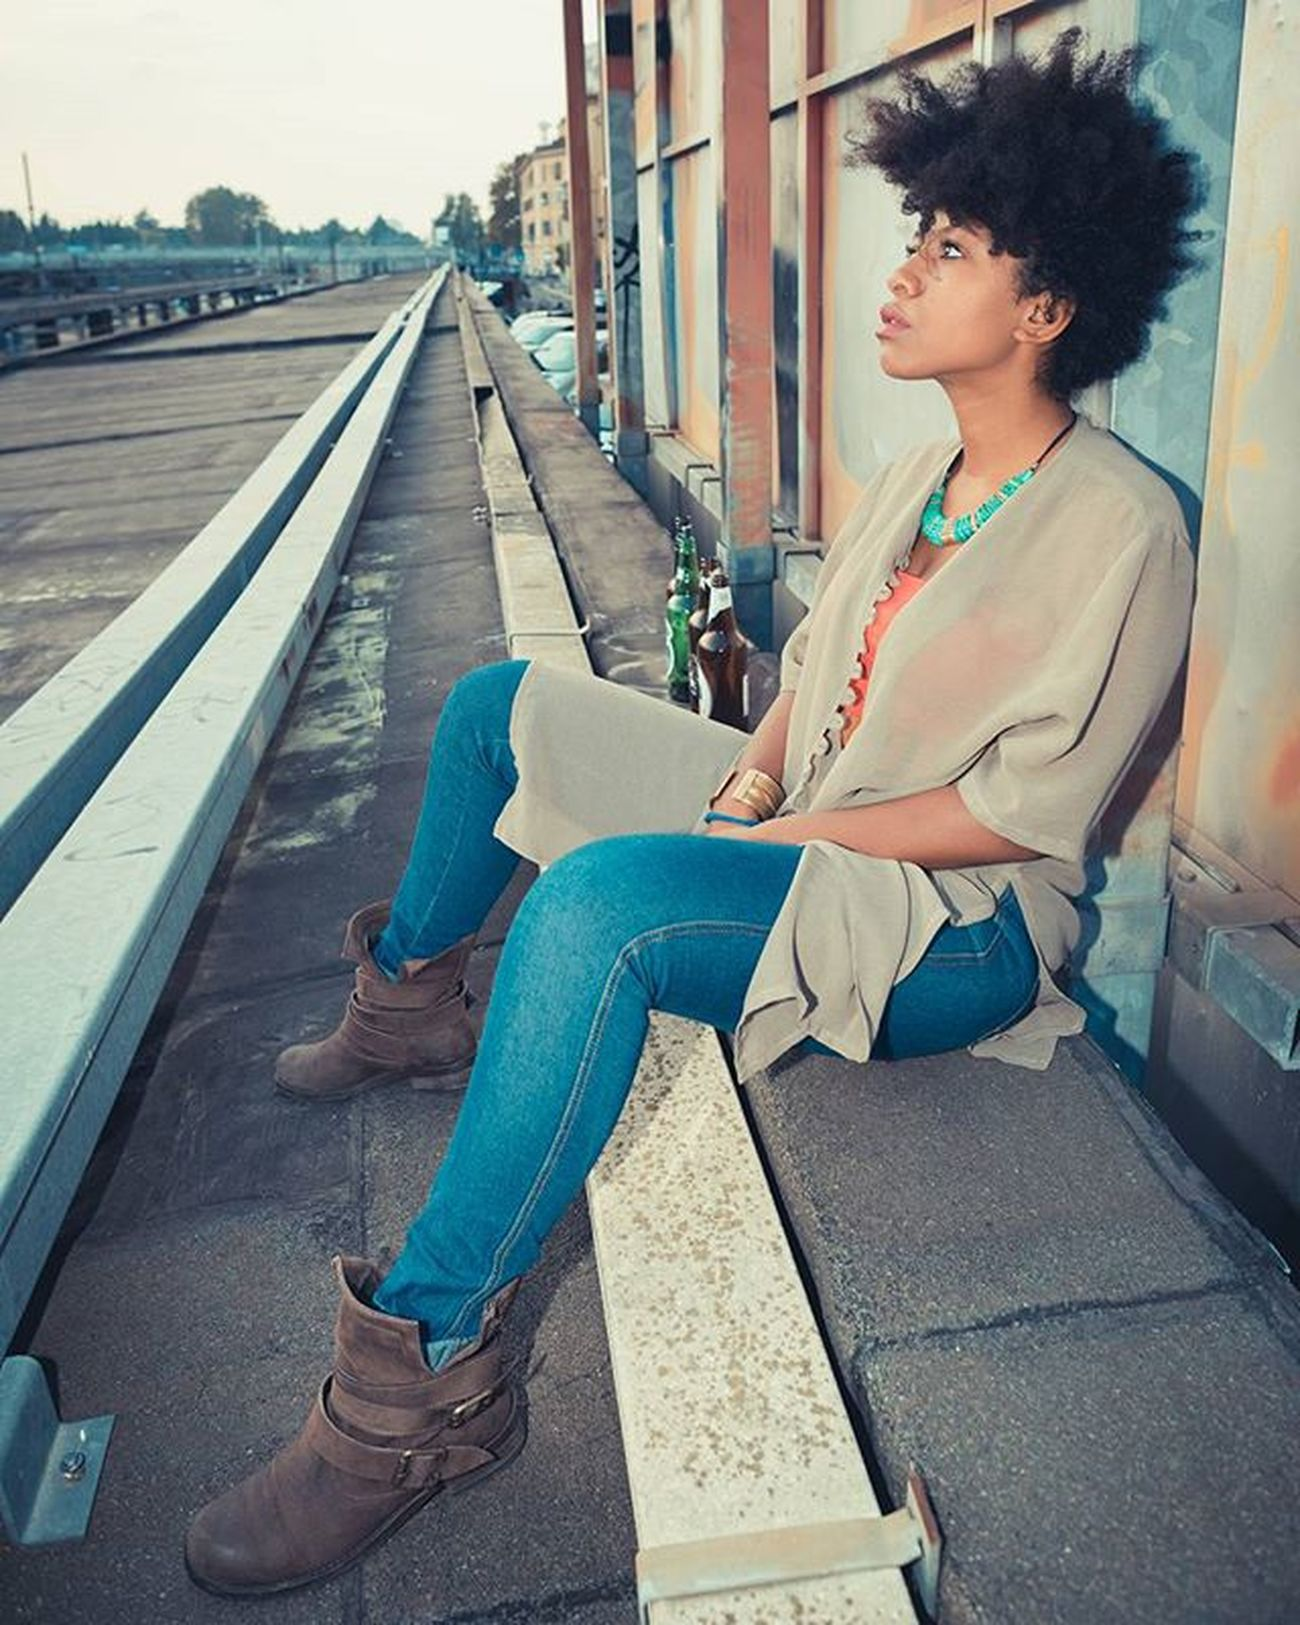 • w w w . e u g e n i o m a r o n g i u . i t • Cindy 3 - Beautiful Girl Afro Black Music Lifestyle Fashion Streetphotography Eugeniomarongiu Visualauthority Livefolk Wwim12pop Portraitpage Instagoodmyphoto Vscoportrait Folkportraits Featuremeofh Fotomobile Everydayeverywhere Threadless Pursuitofportraits Everyday_italy Everydayfoto Peoplescreatives SocalityLiveSD FolkVibe lookslikefilm xelfies ftmedd